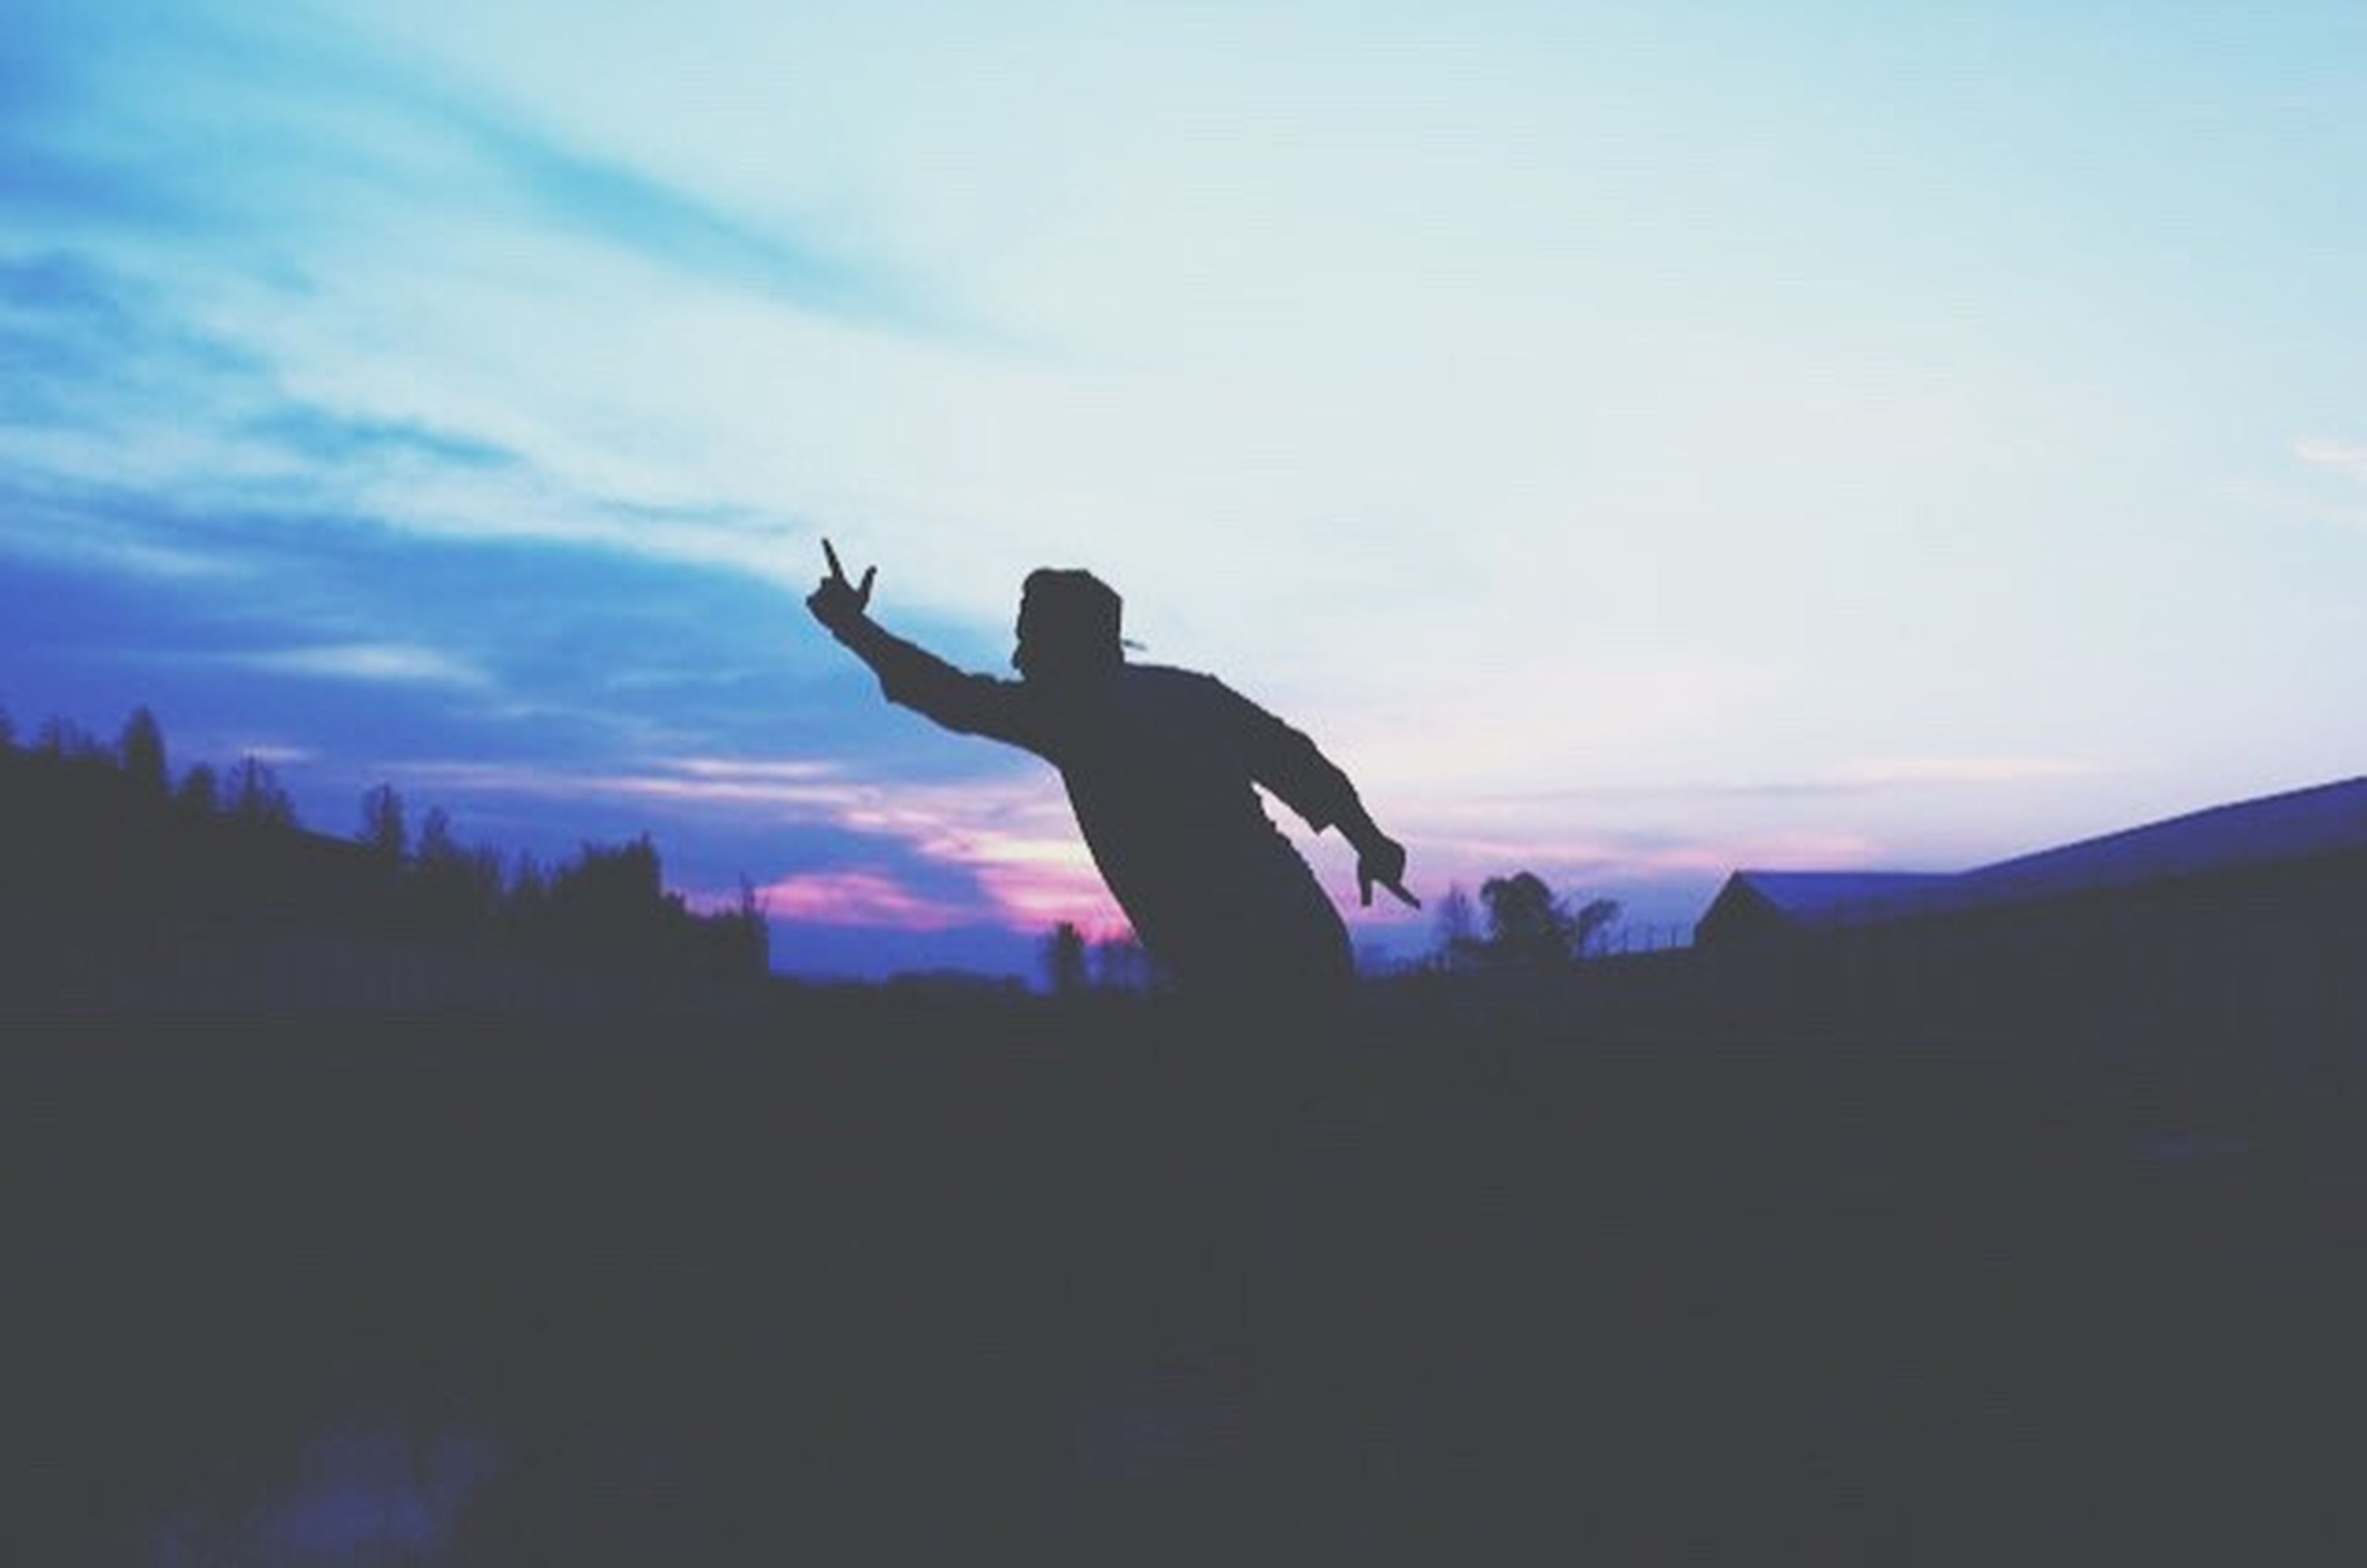 silhouette, lifestyles, sky, leisure activity, sunset, arms raised, full length, mid-air, men, low angle view, jumping, dusk, freedom, arms outstretched, cloud - sky, carefree, enjoyment, standing